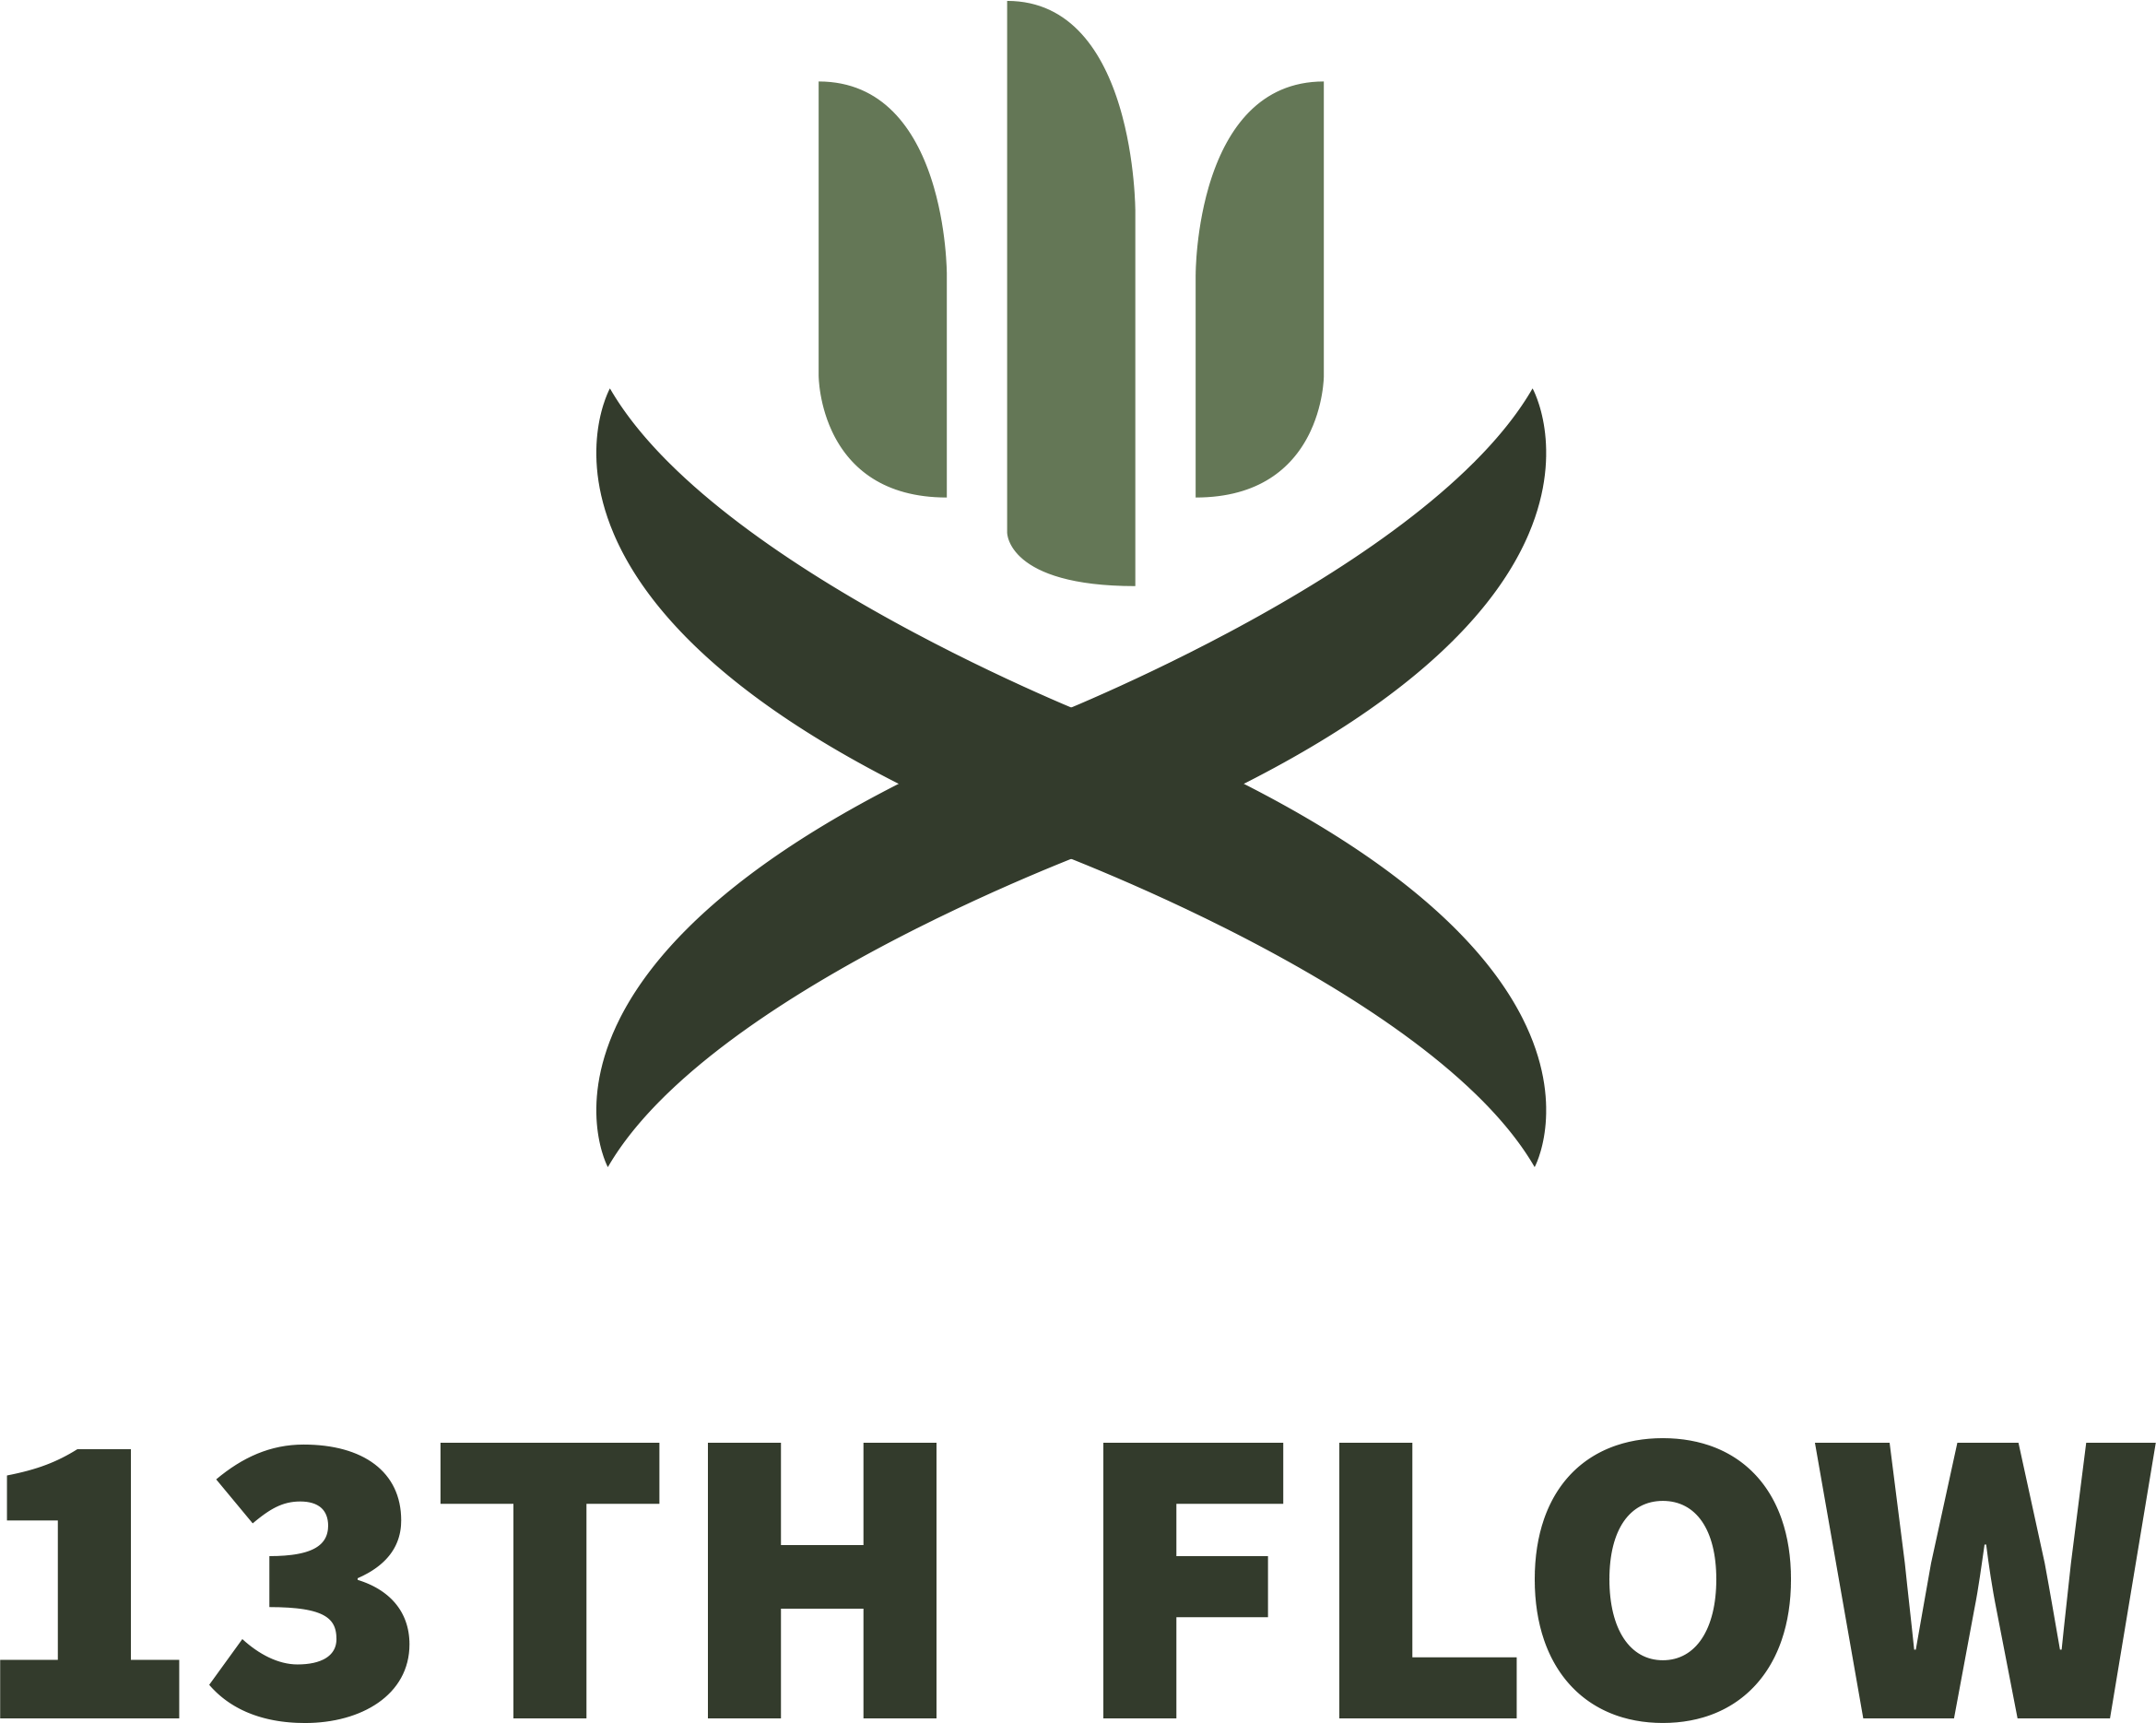 13thFlow-VerticalLogo-2Color.png